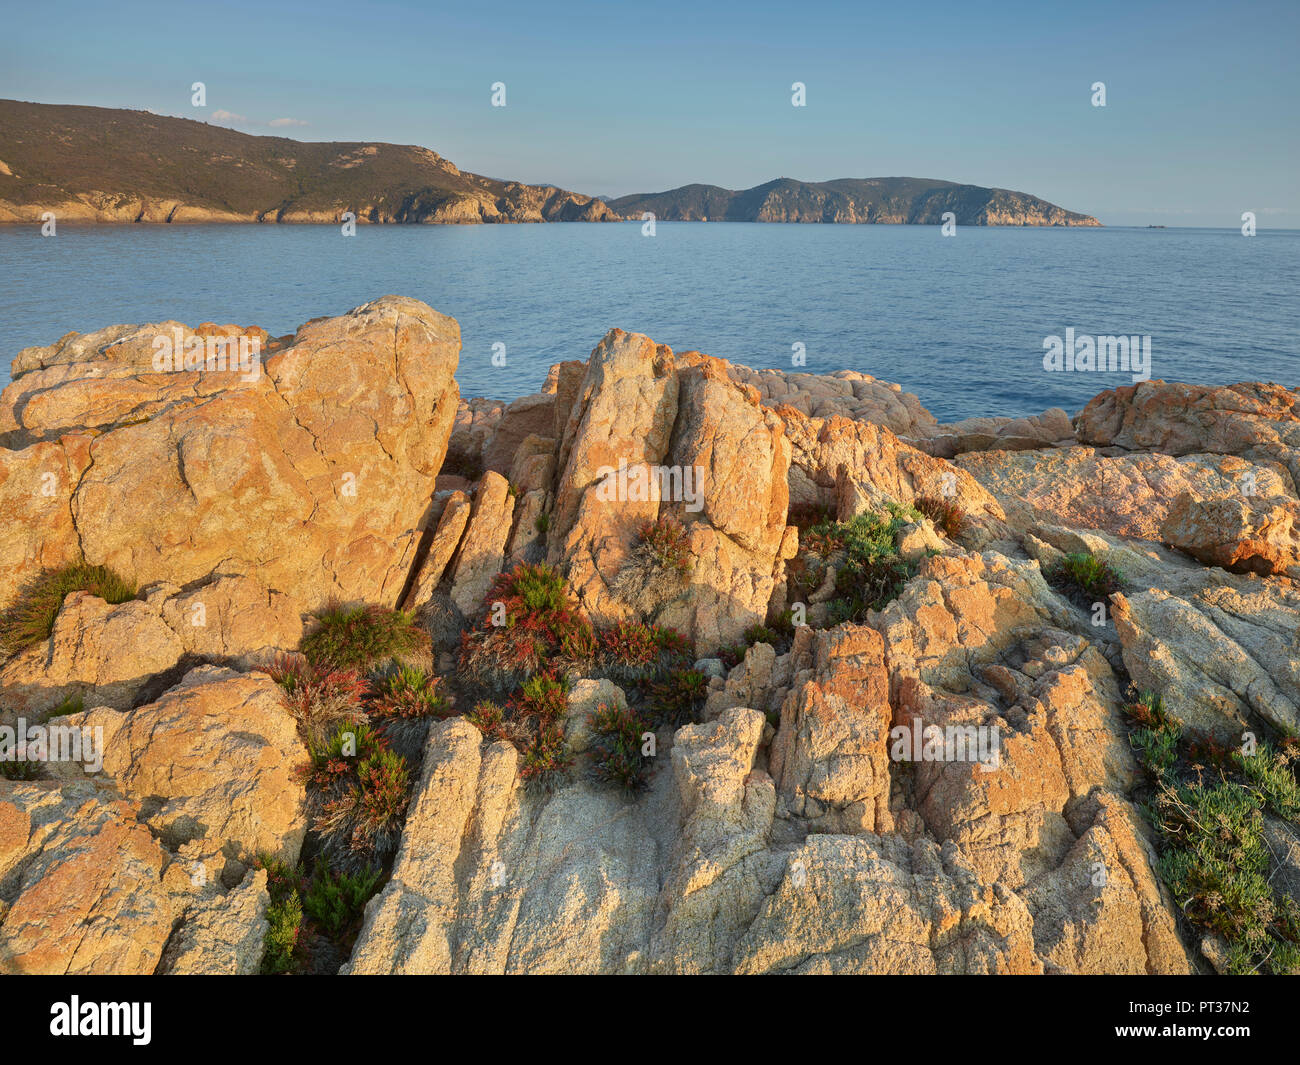 Evening mood at Capu Rossu, D'Arone, Corsica, France - Stock Image